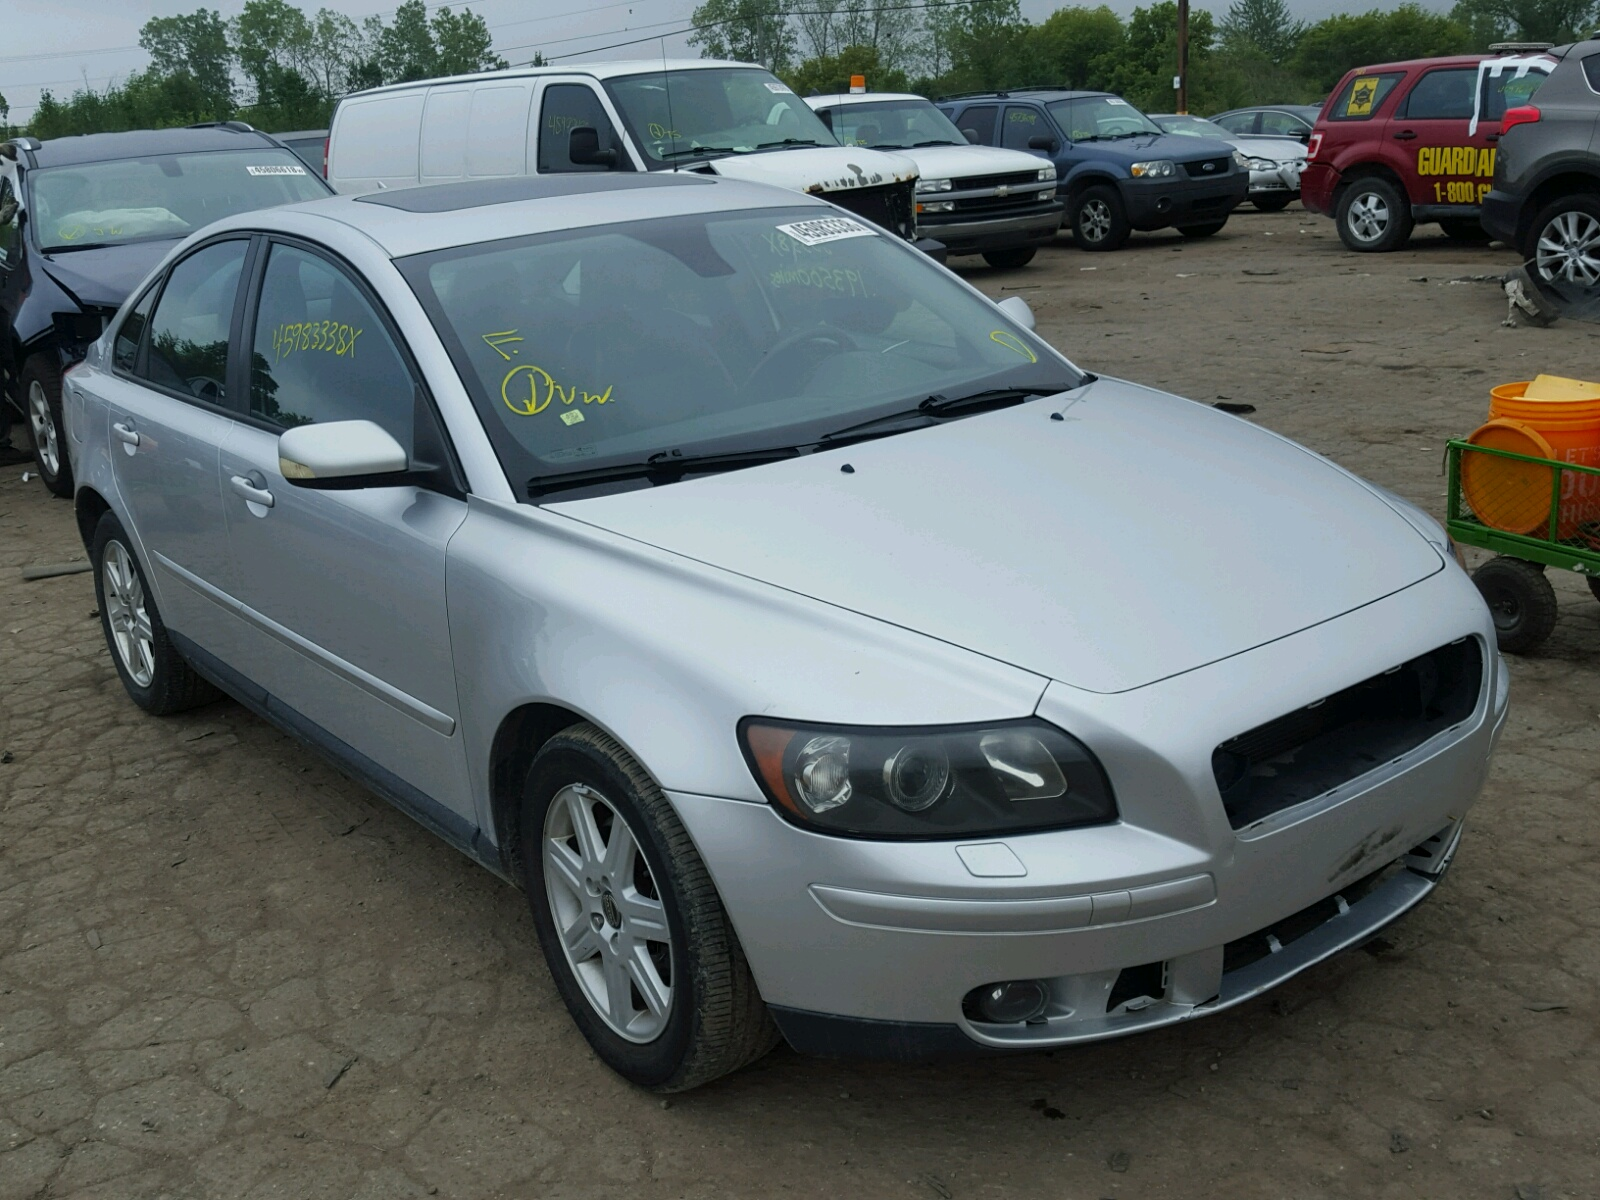 damaged cars for sale near me beautiful damaged volvo s40 car for sale and auction used cars. Black Bedroom Furniture Sets. Home Design Ideas